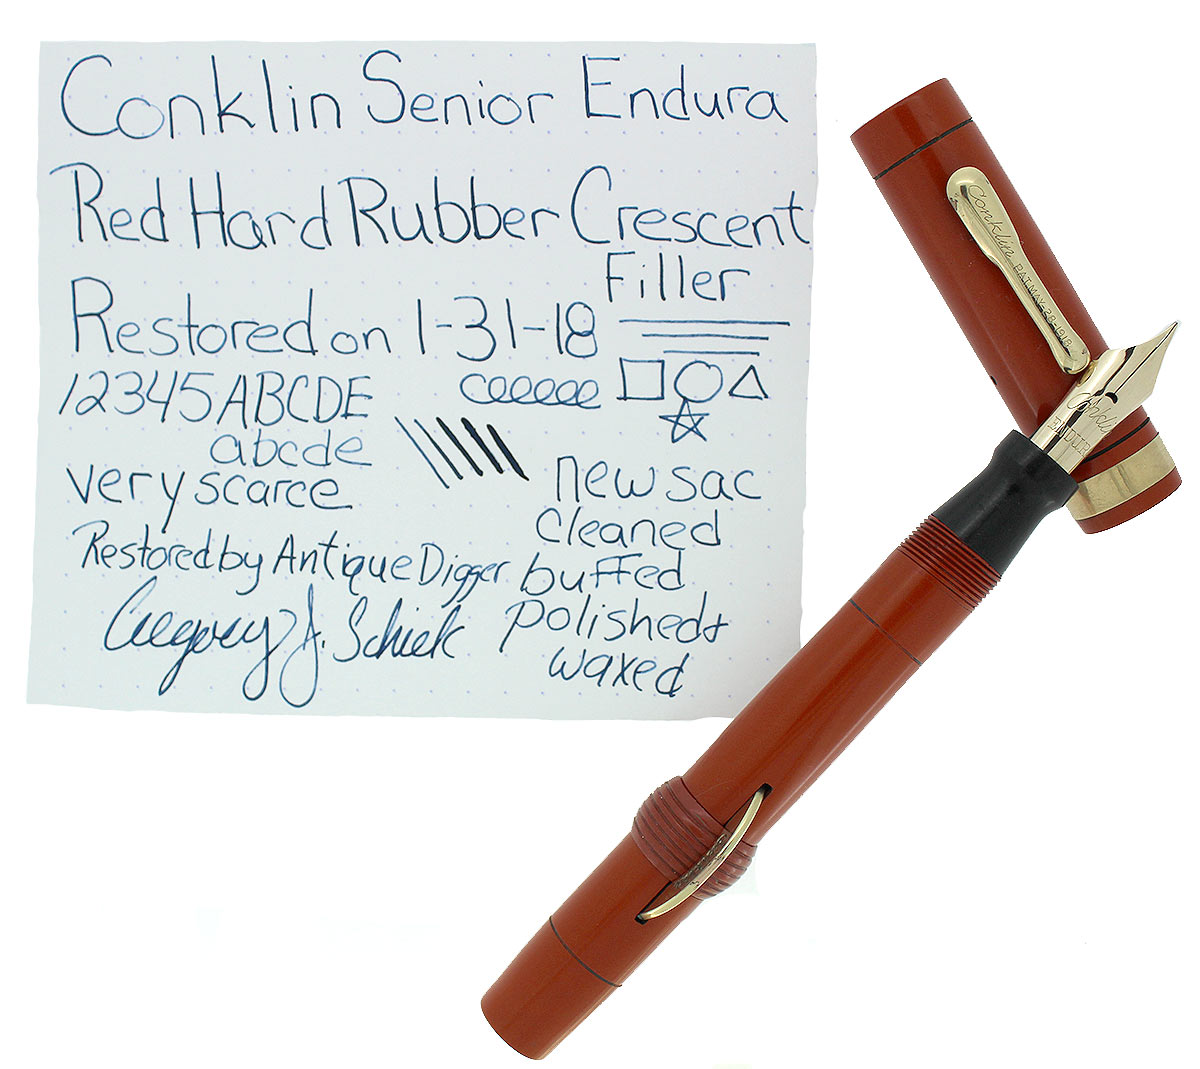 CIRCA 1924 CONKLIN SENIOR ENDURA RED HARD RUBBER CRESCENT FILLER FOUNTAIN PEN OFFERED BY ANTIQUE DIGGER